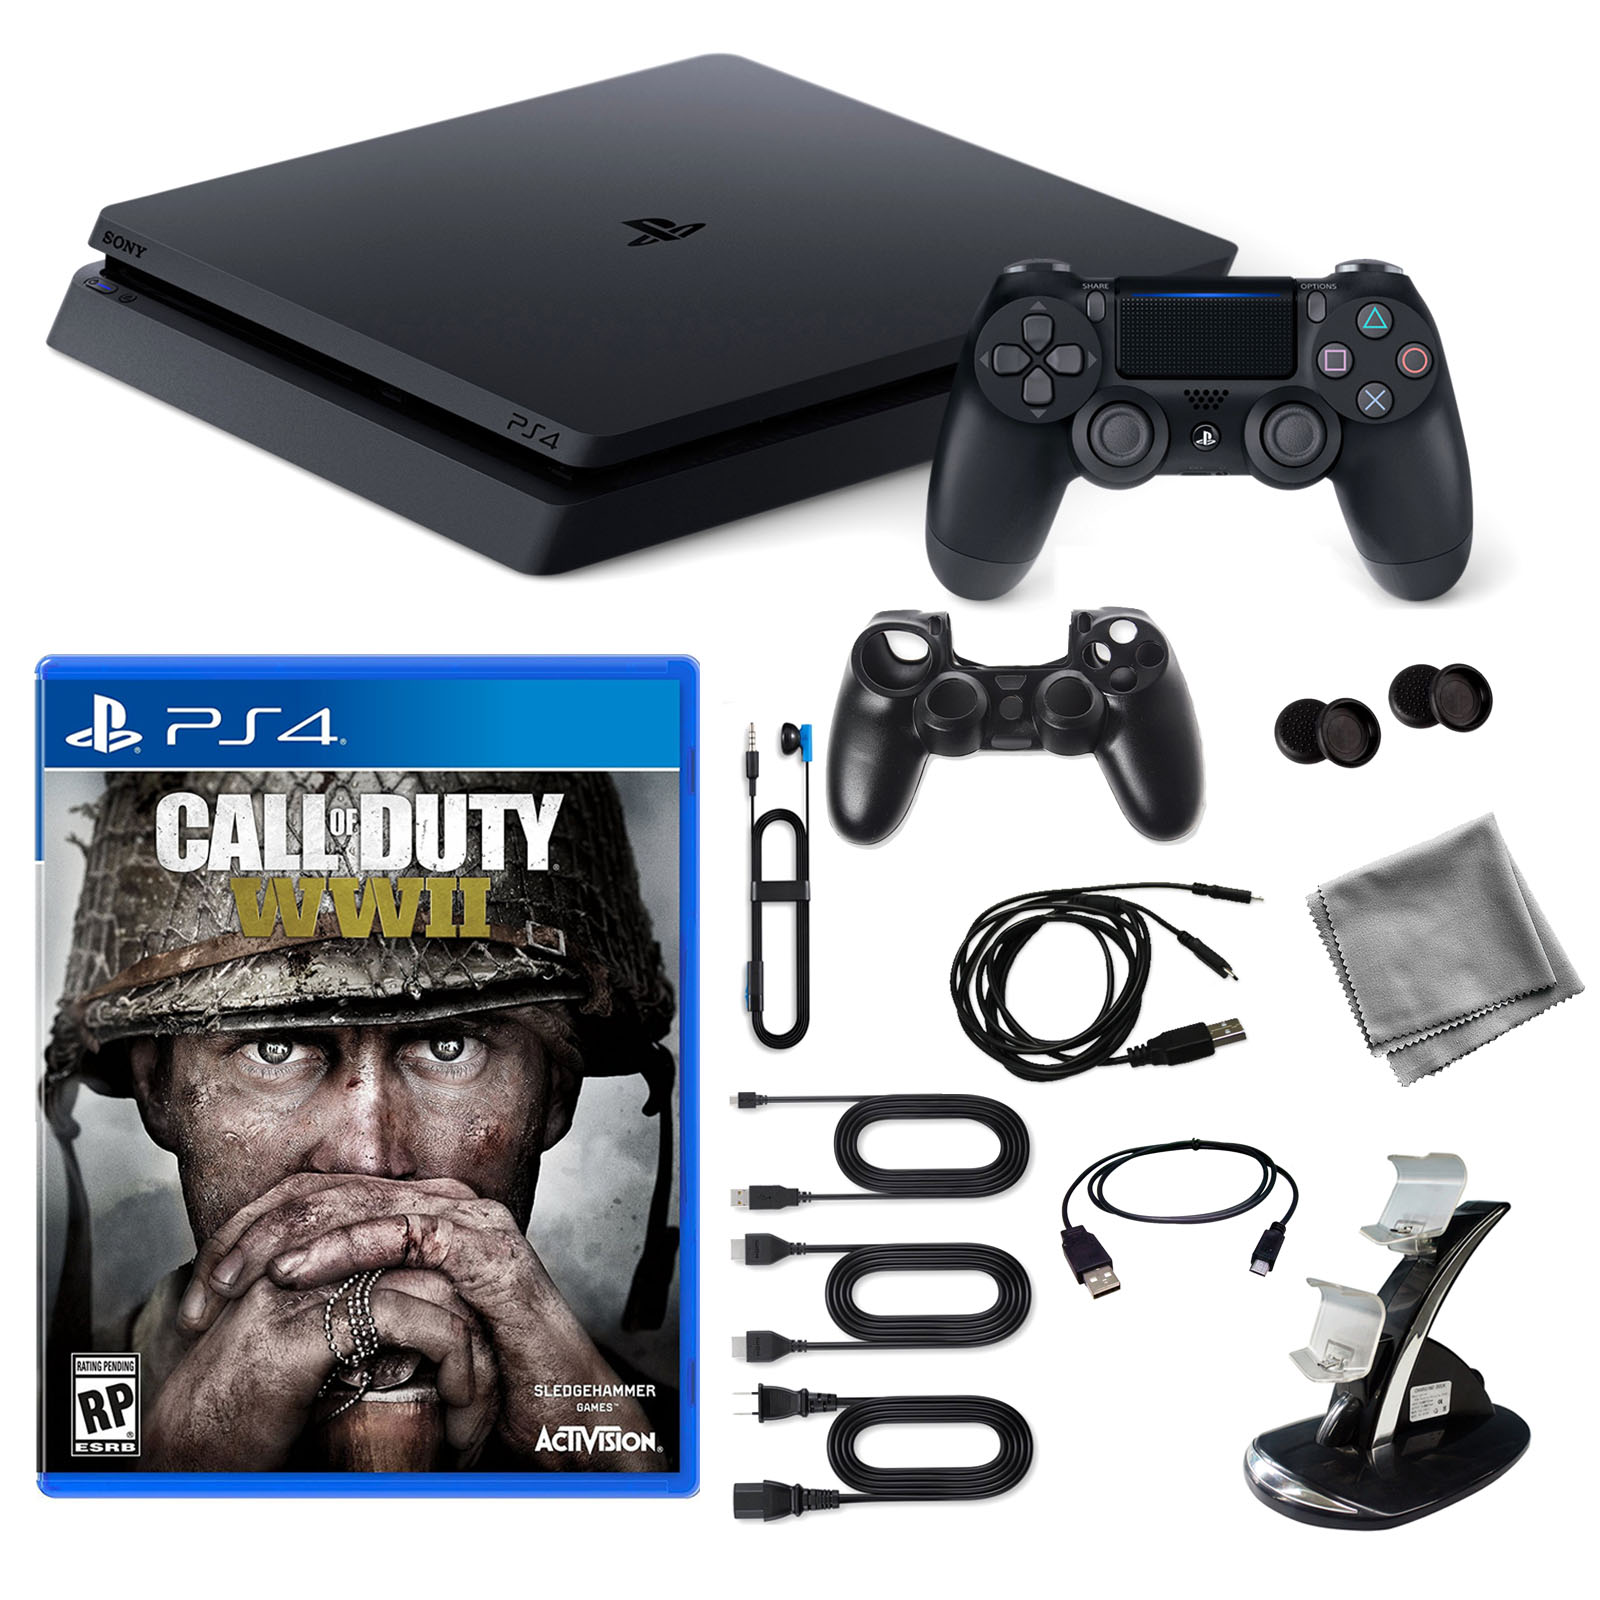 Playstation 4 1TB Core Console with COD WWII Game and 9 in 1 Kit by PlayStation